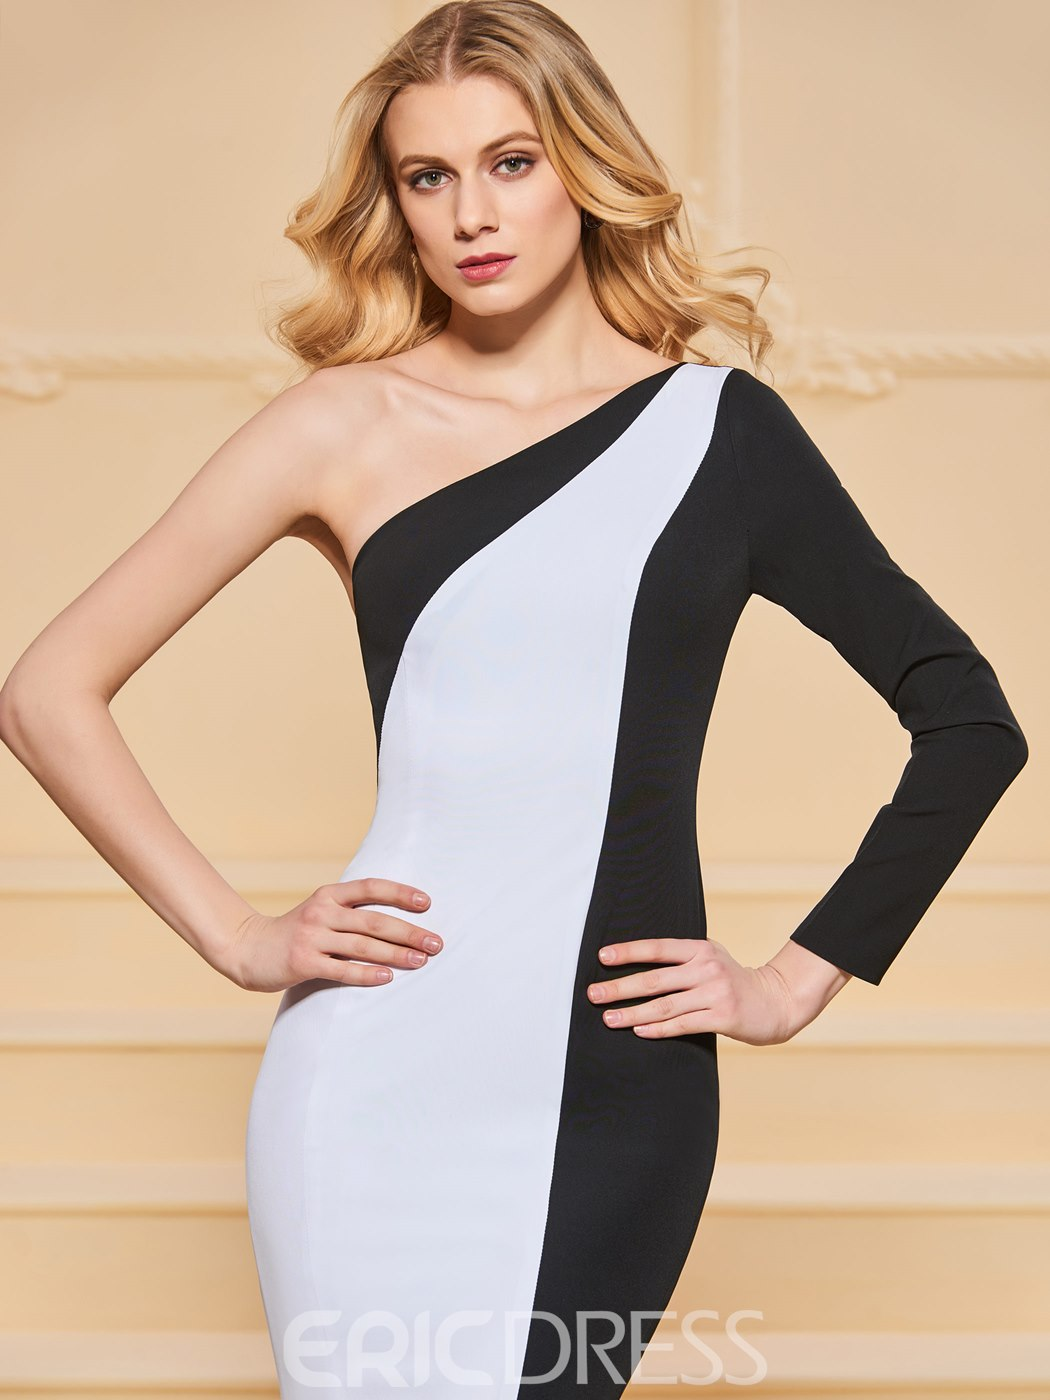 Ericdress One Shoulder Black and White Mermaid Evening Dress